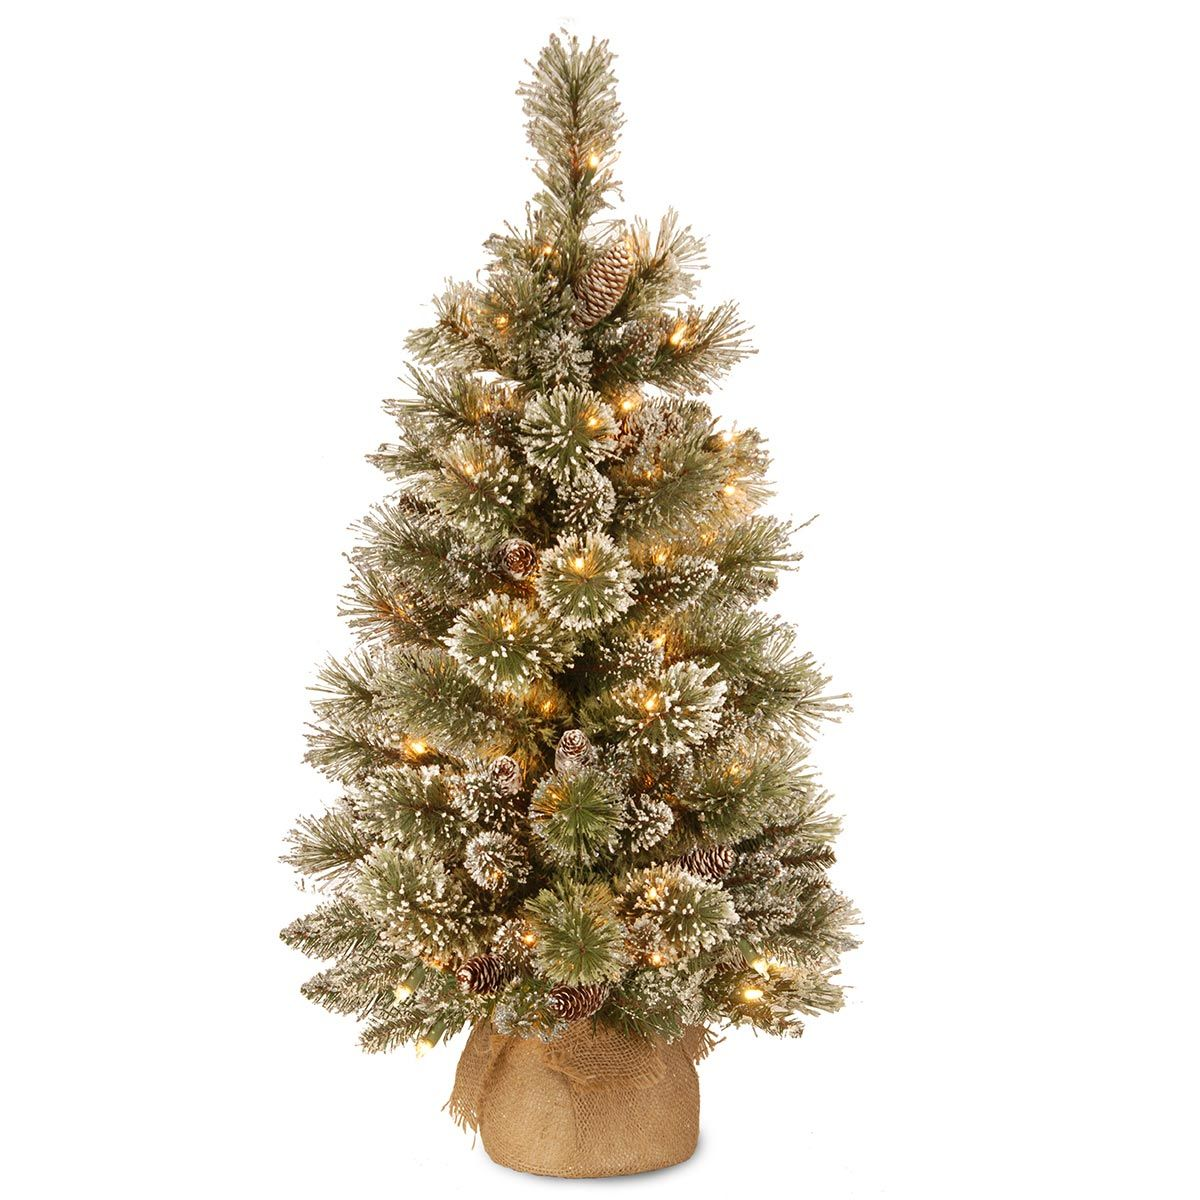 3ft pre lit battery operated glittery bristle pine burlap artificial christmas t - 3 Ft Pre Lit Christmas Tree